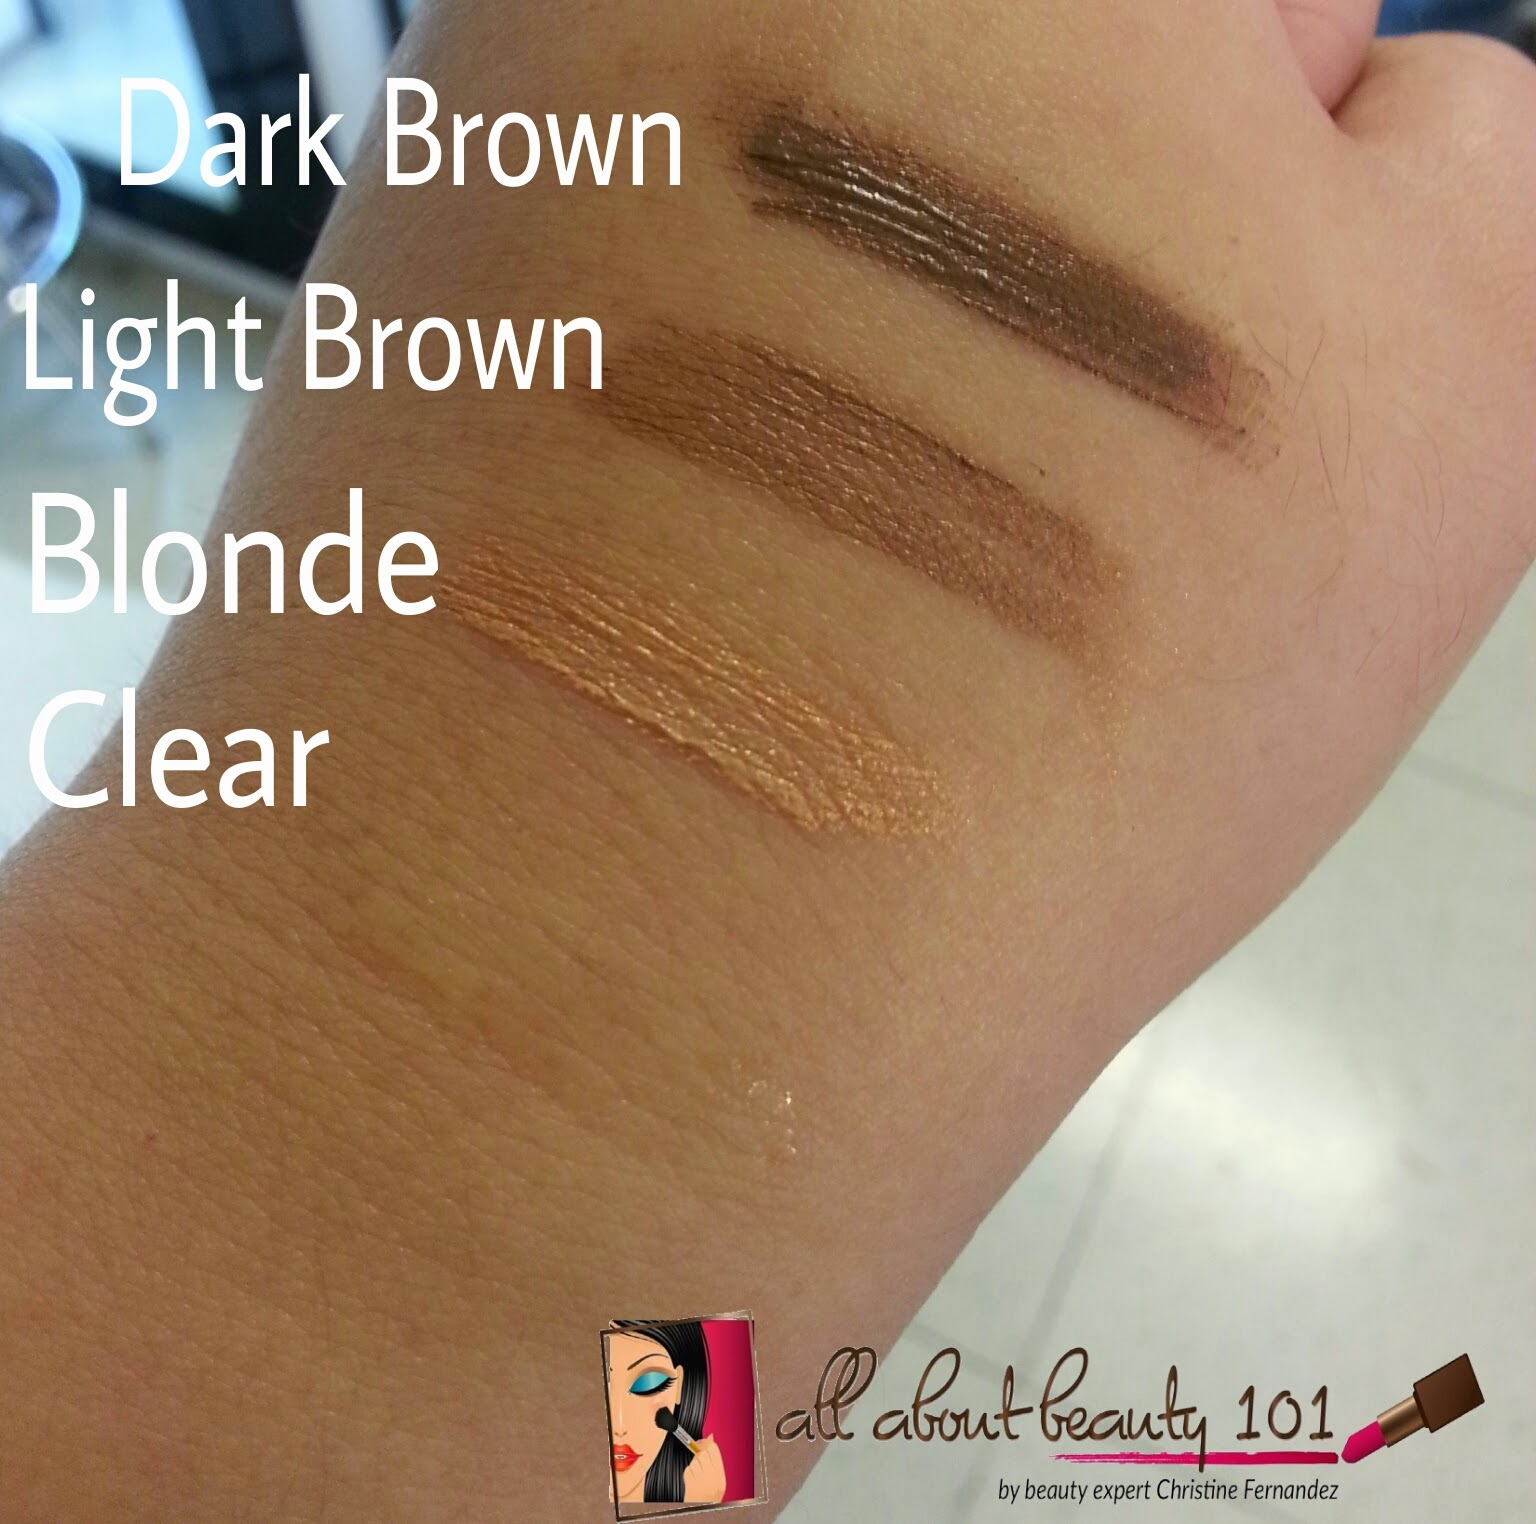 Fashion 21 Eyebrow Mascara Swatches All About Beauty 101